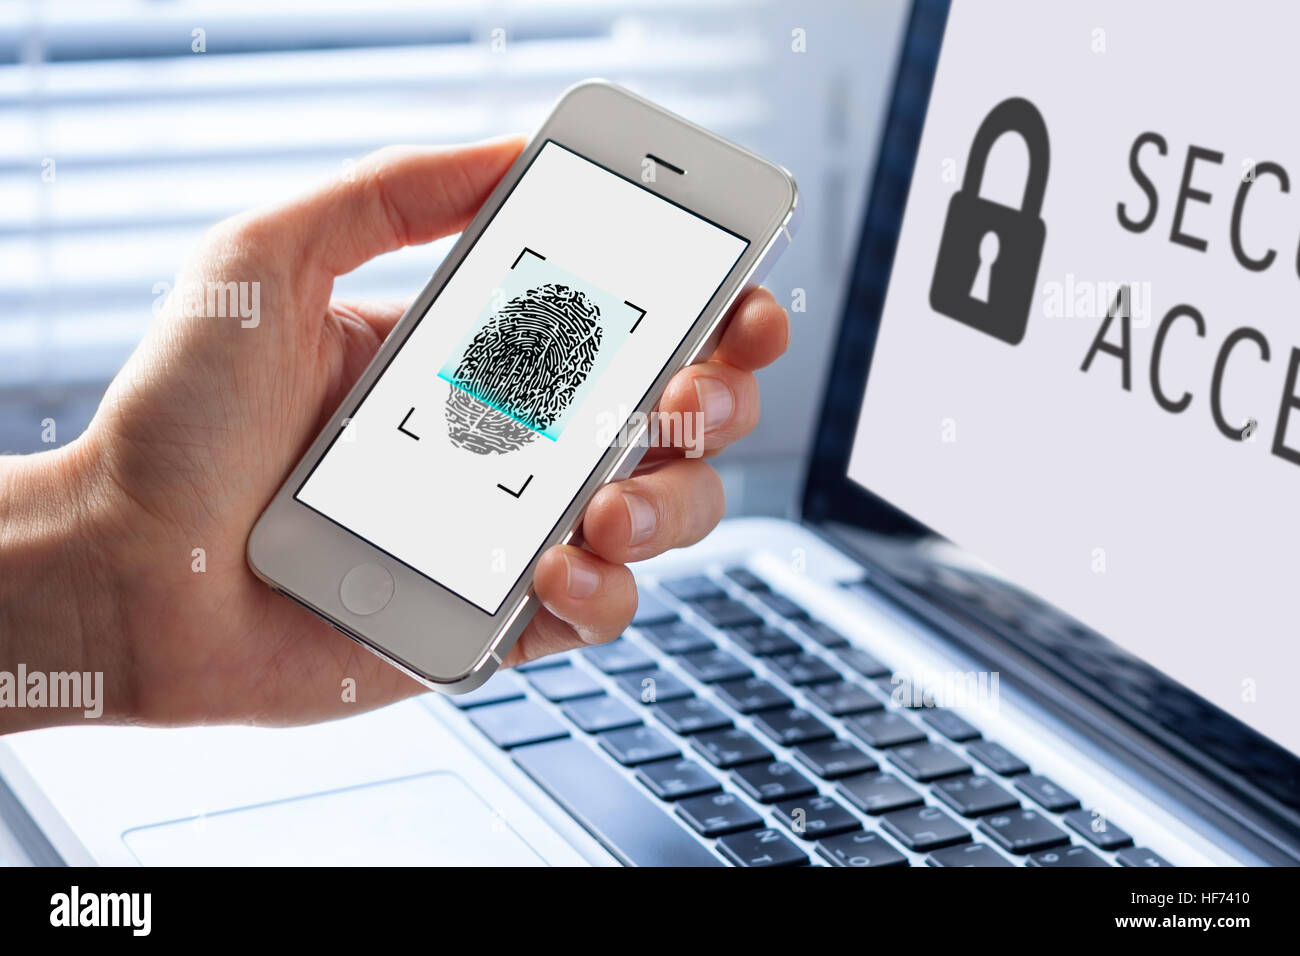 biometrics access stock photos  u0026 biometrics access stock images